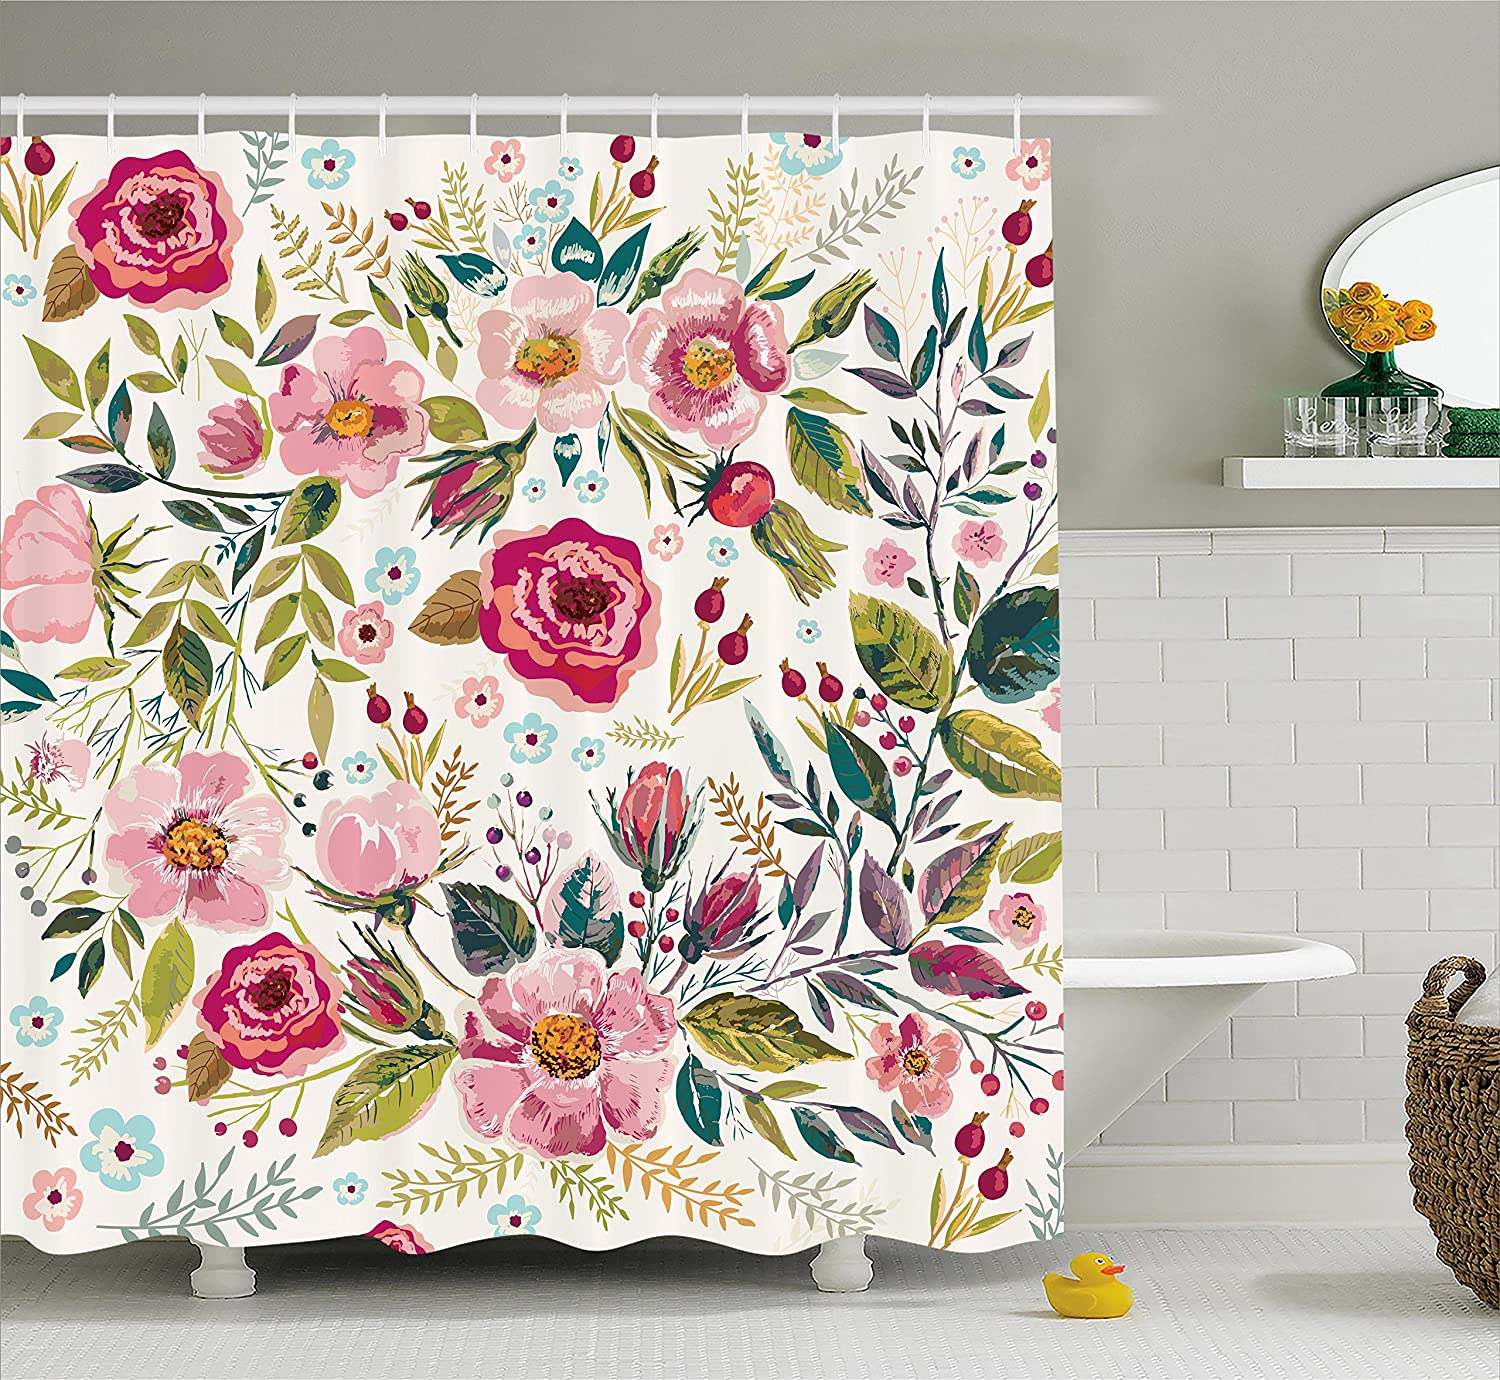 Ambesonne Floral Shower Curtain by, Shabby Chic Flowers Roses Pedals Dots Leaves Buds Spring Season Theme Image Artwork, Fabric Bathroom Decor Set with Hooks, 70 Inches, Multicolor